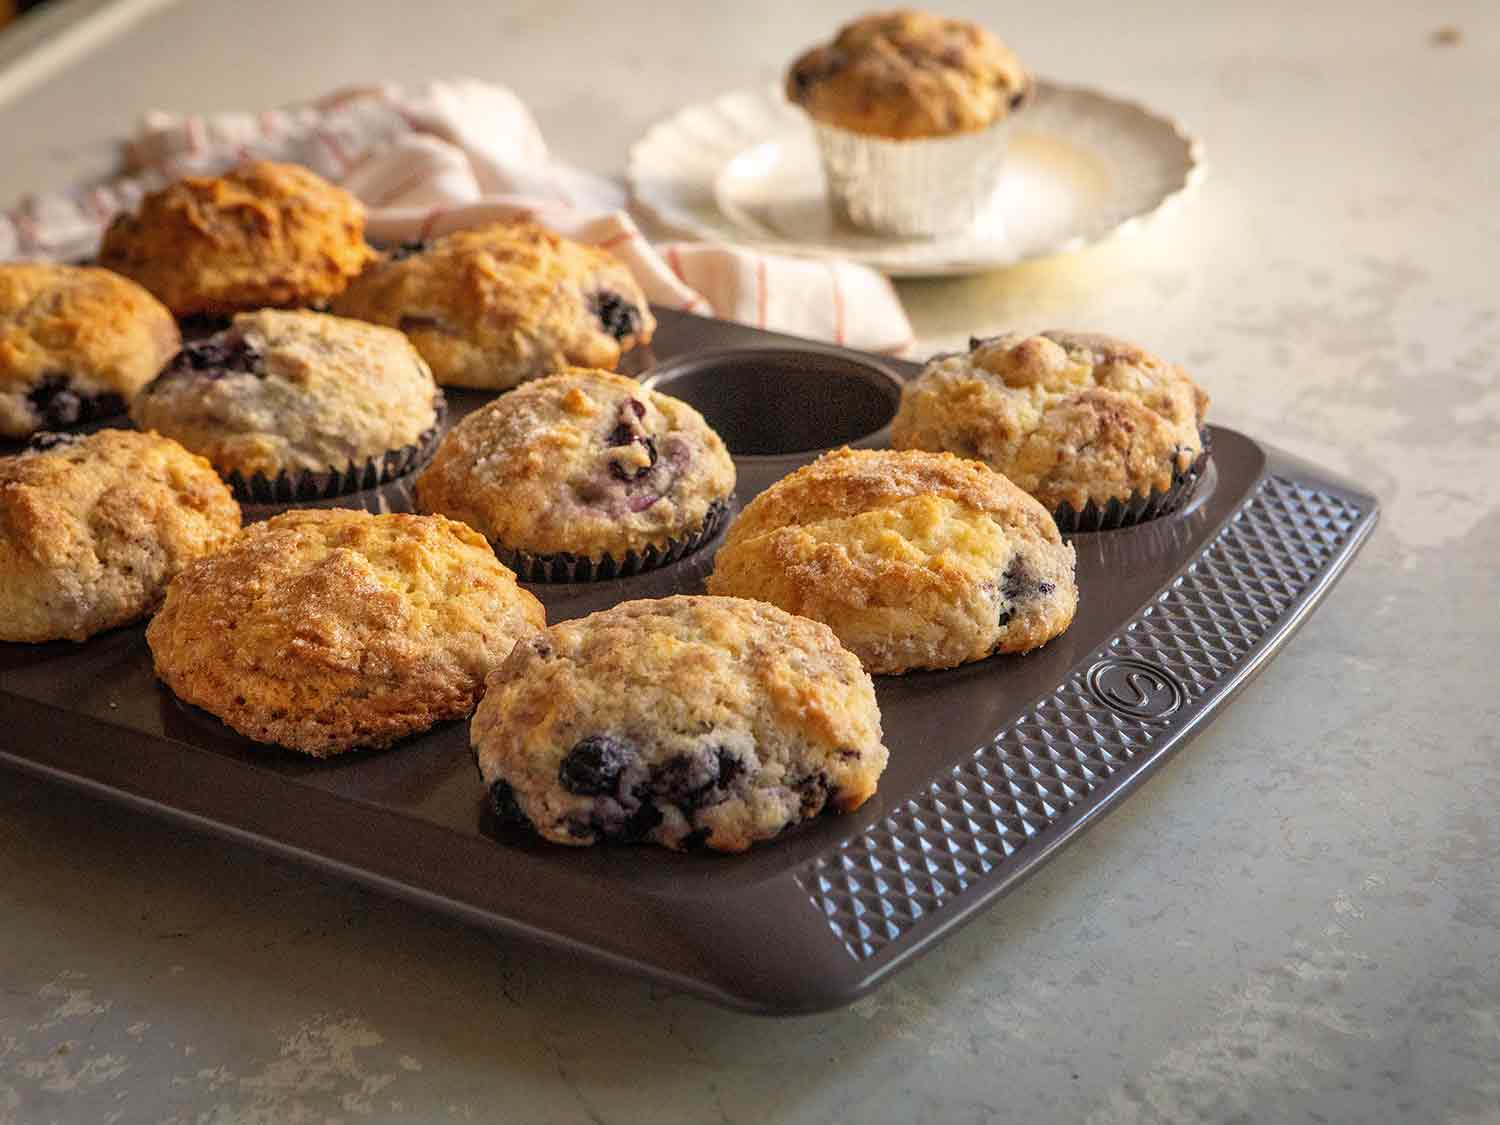 Saveur Selects 12-cup non-stick muffin pan